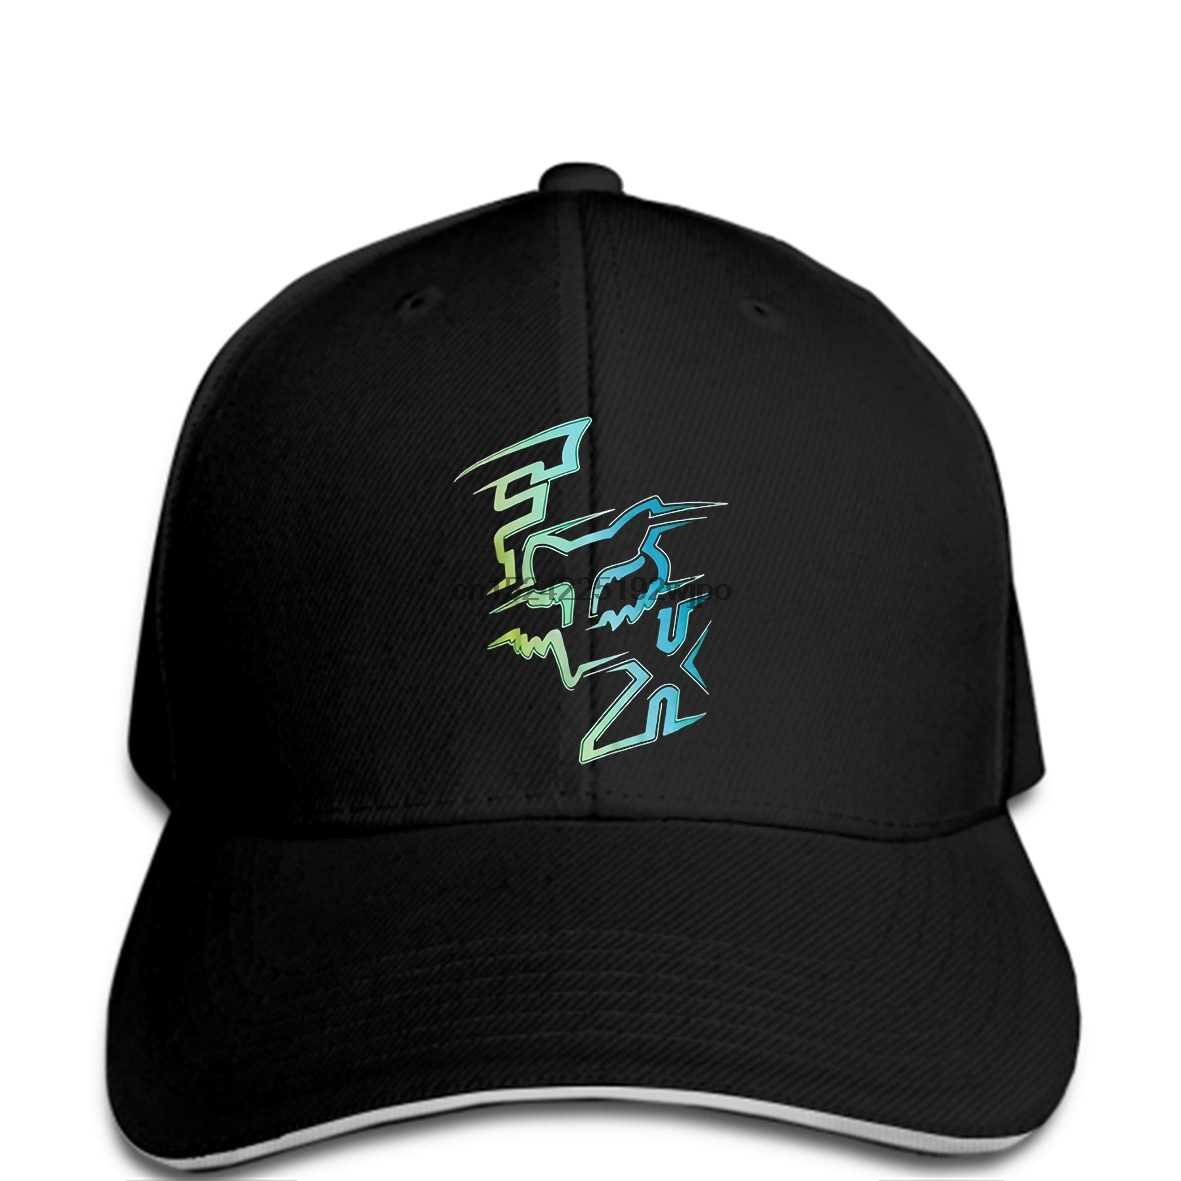 0551a6d8d3d4e ... Women Men Motor Sports Snapback Hat Unisex Cartoon Pattern Embroidery  Caps Hip Hop Hats CP0273. US  7.49. 4.8 (713). 1556 Orders. Men Baseball  cap Fox ...